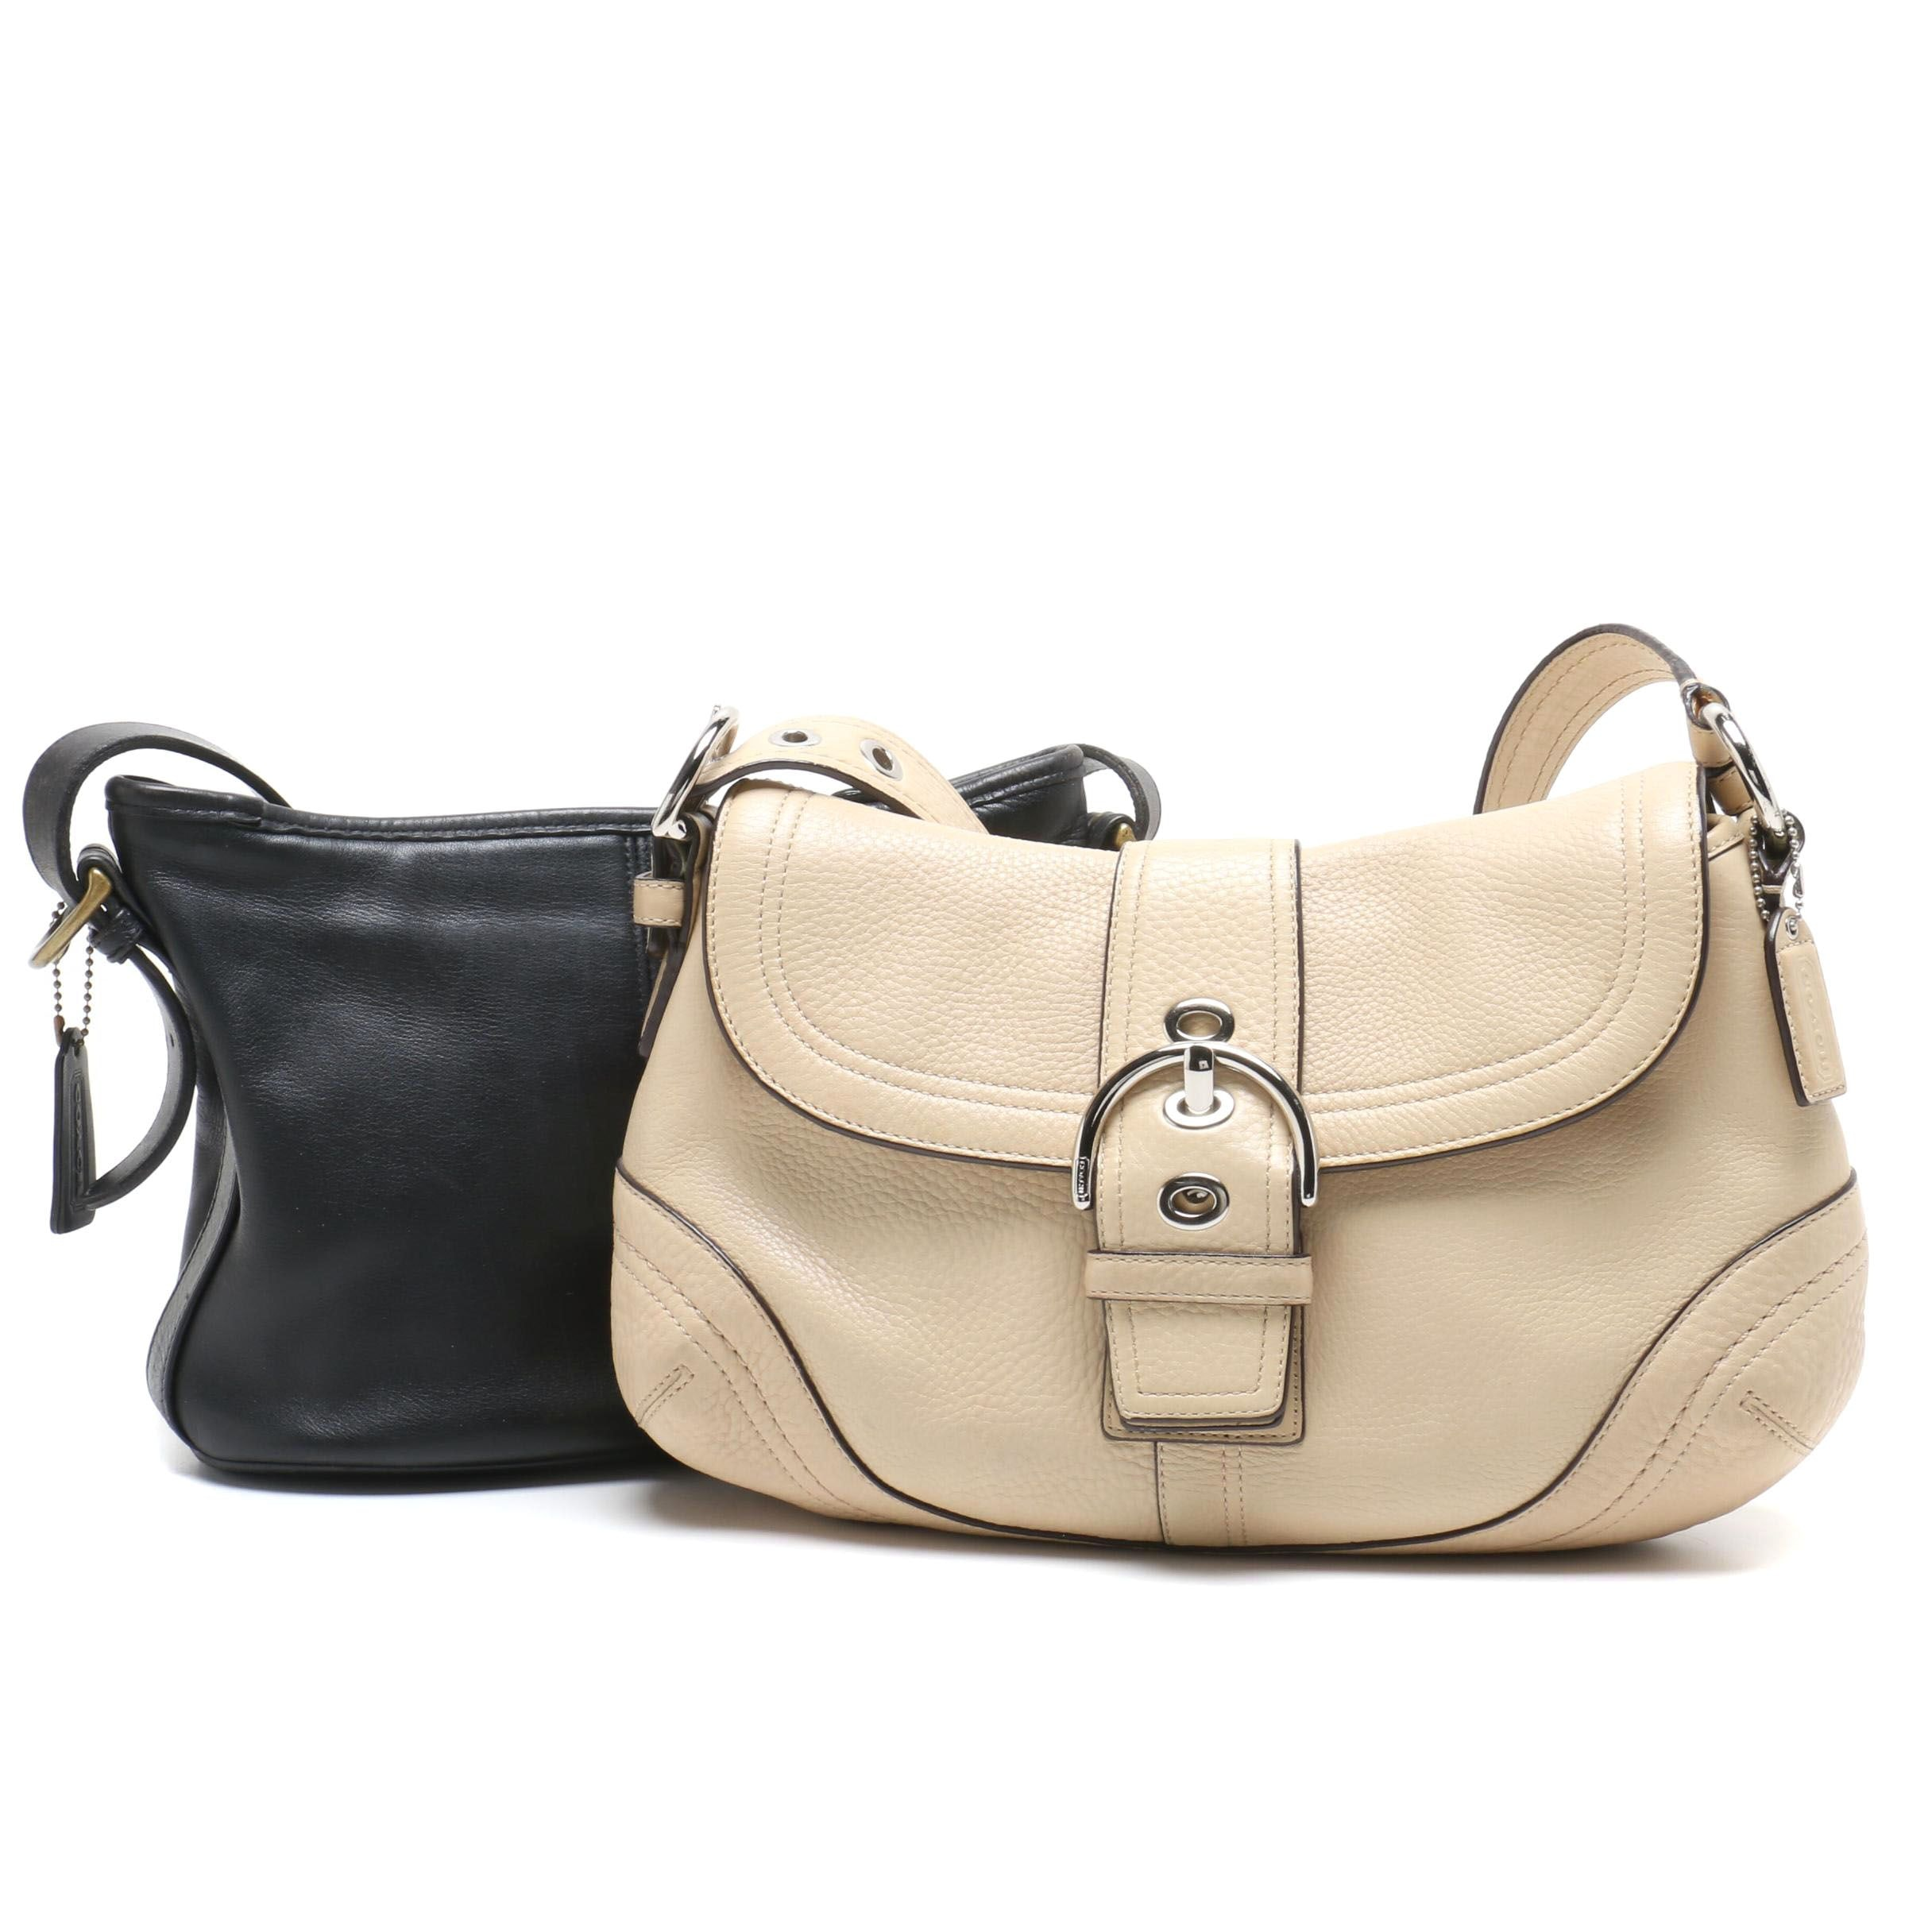 Coach Beige Leather Soho Buckle Flap Bag and Black Leather Worth Soho Bag